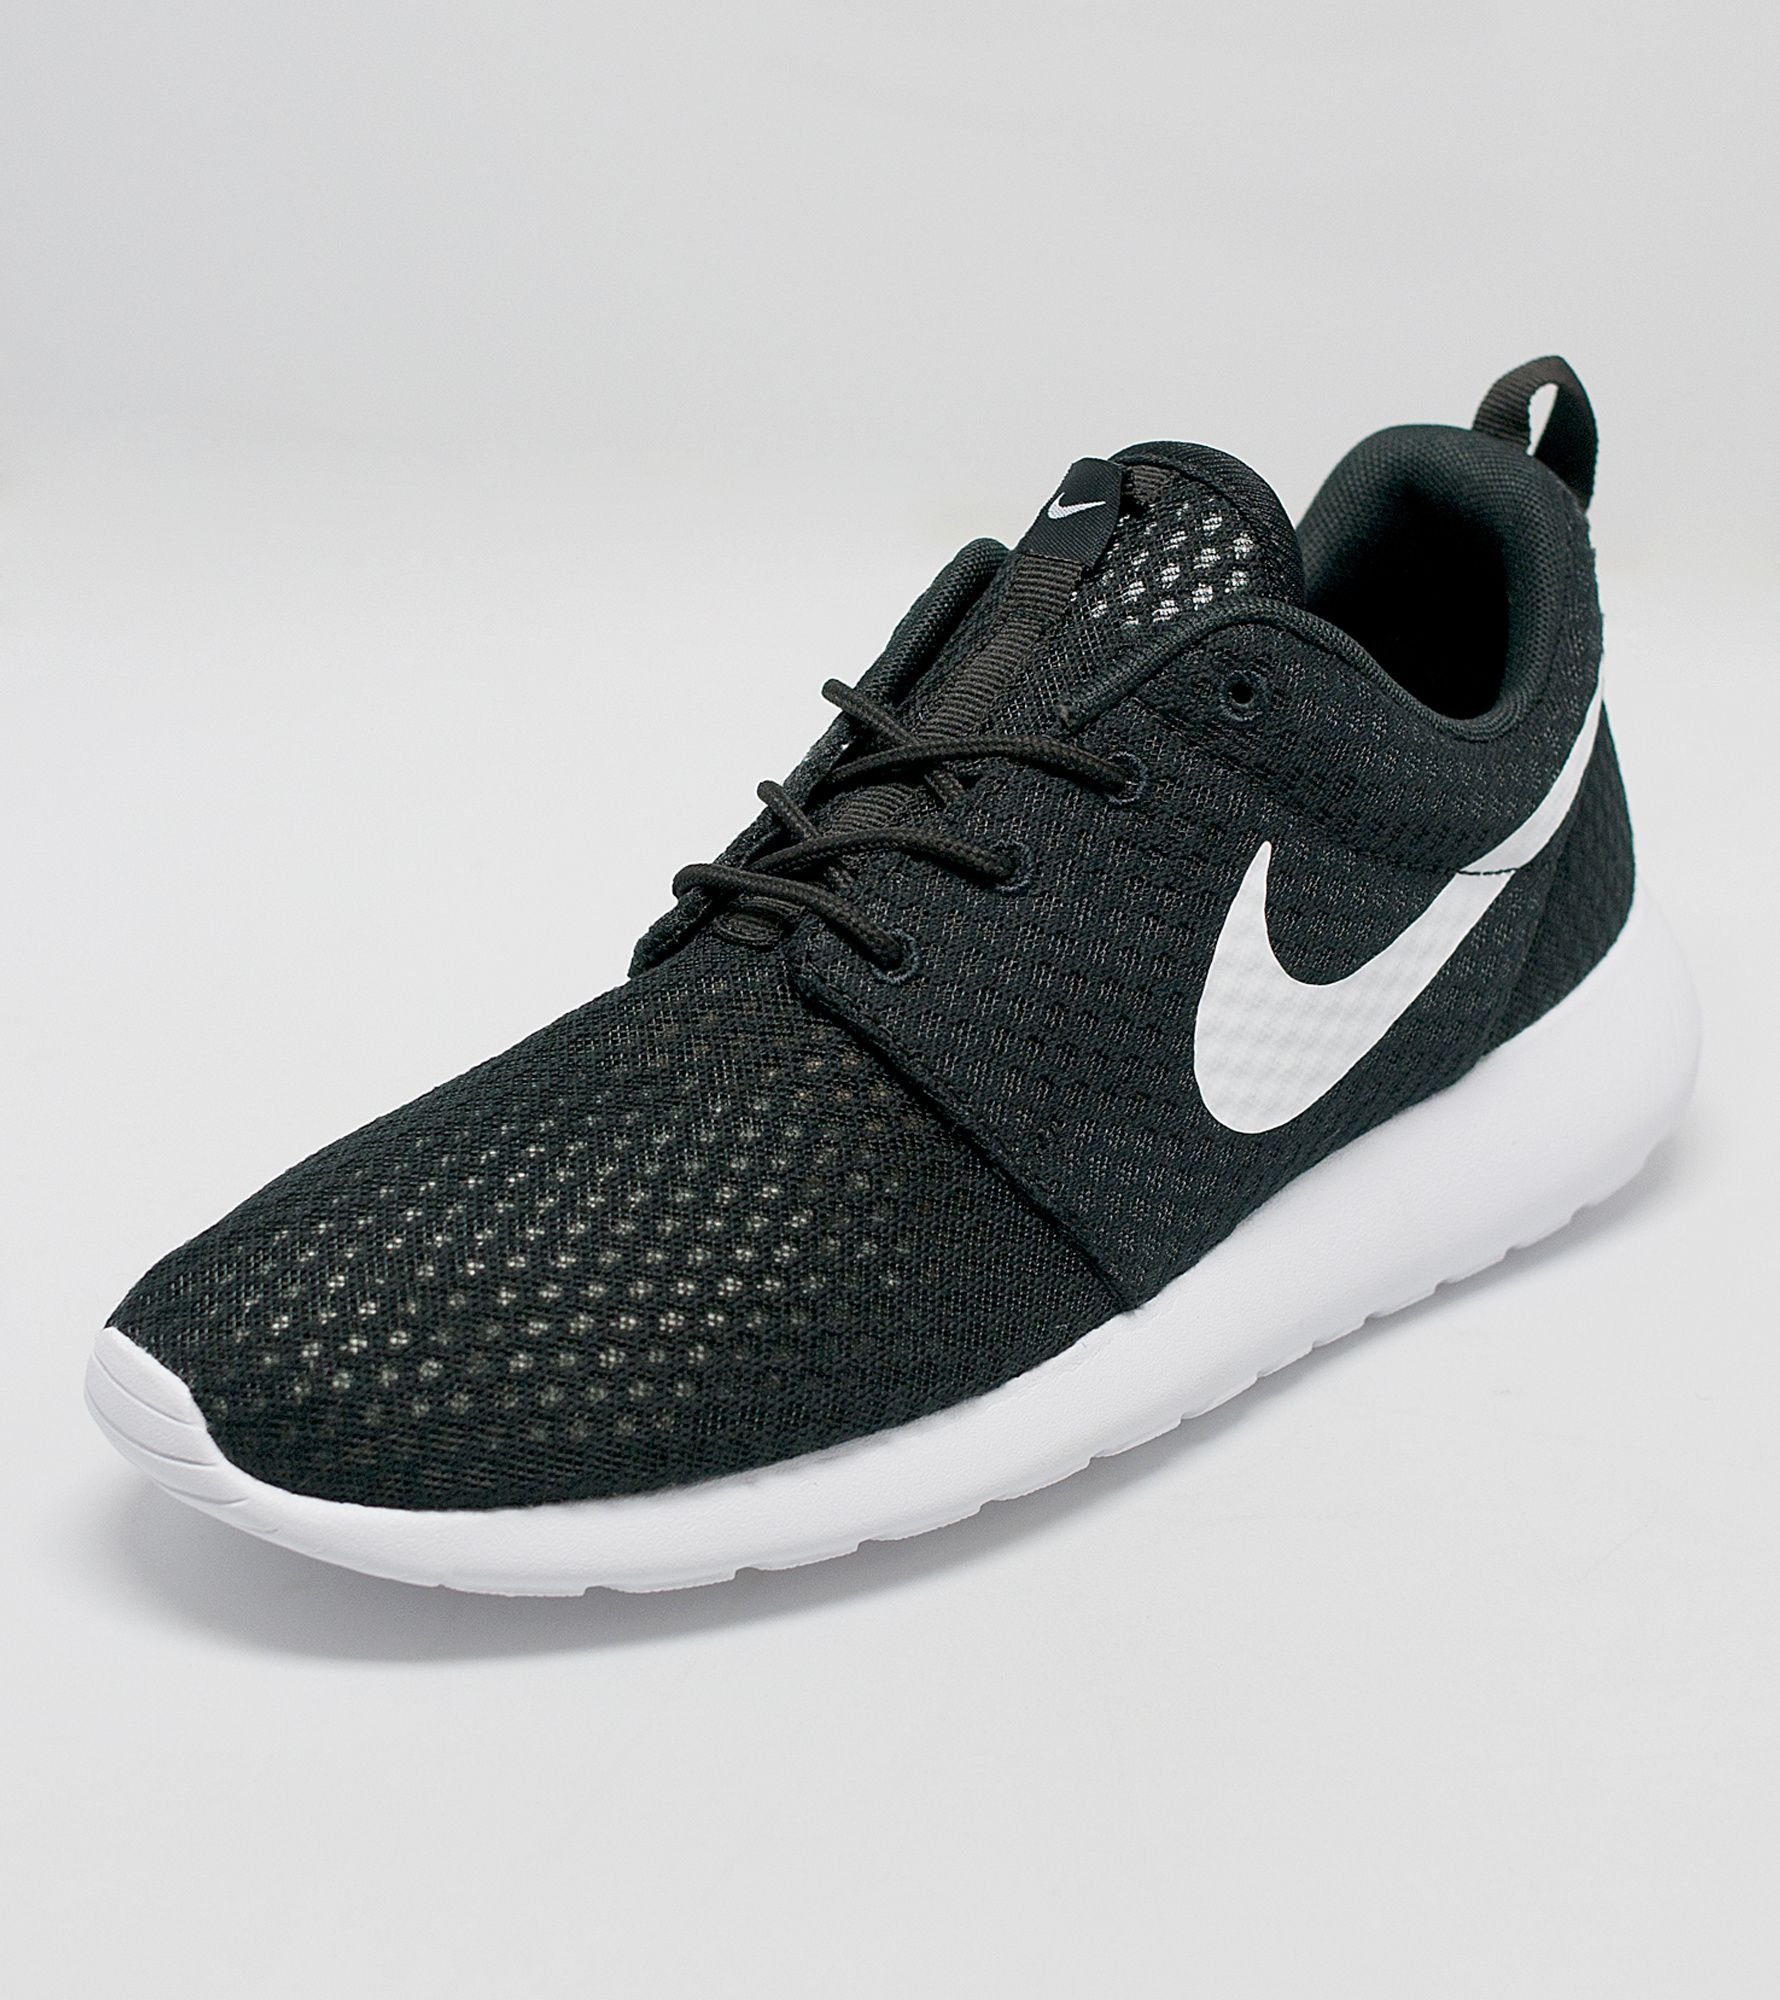 Nike Roshe One Black And White Size 12